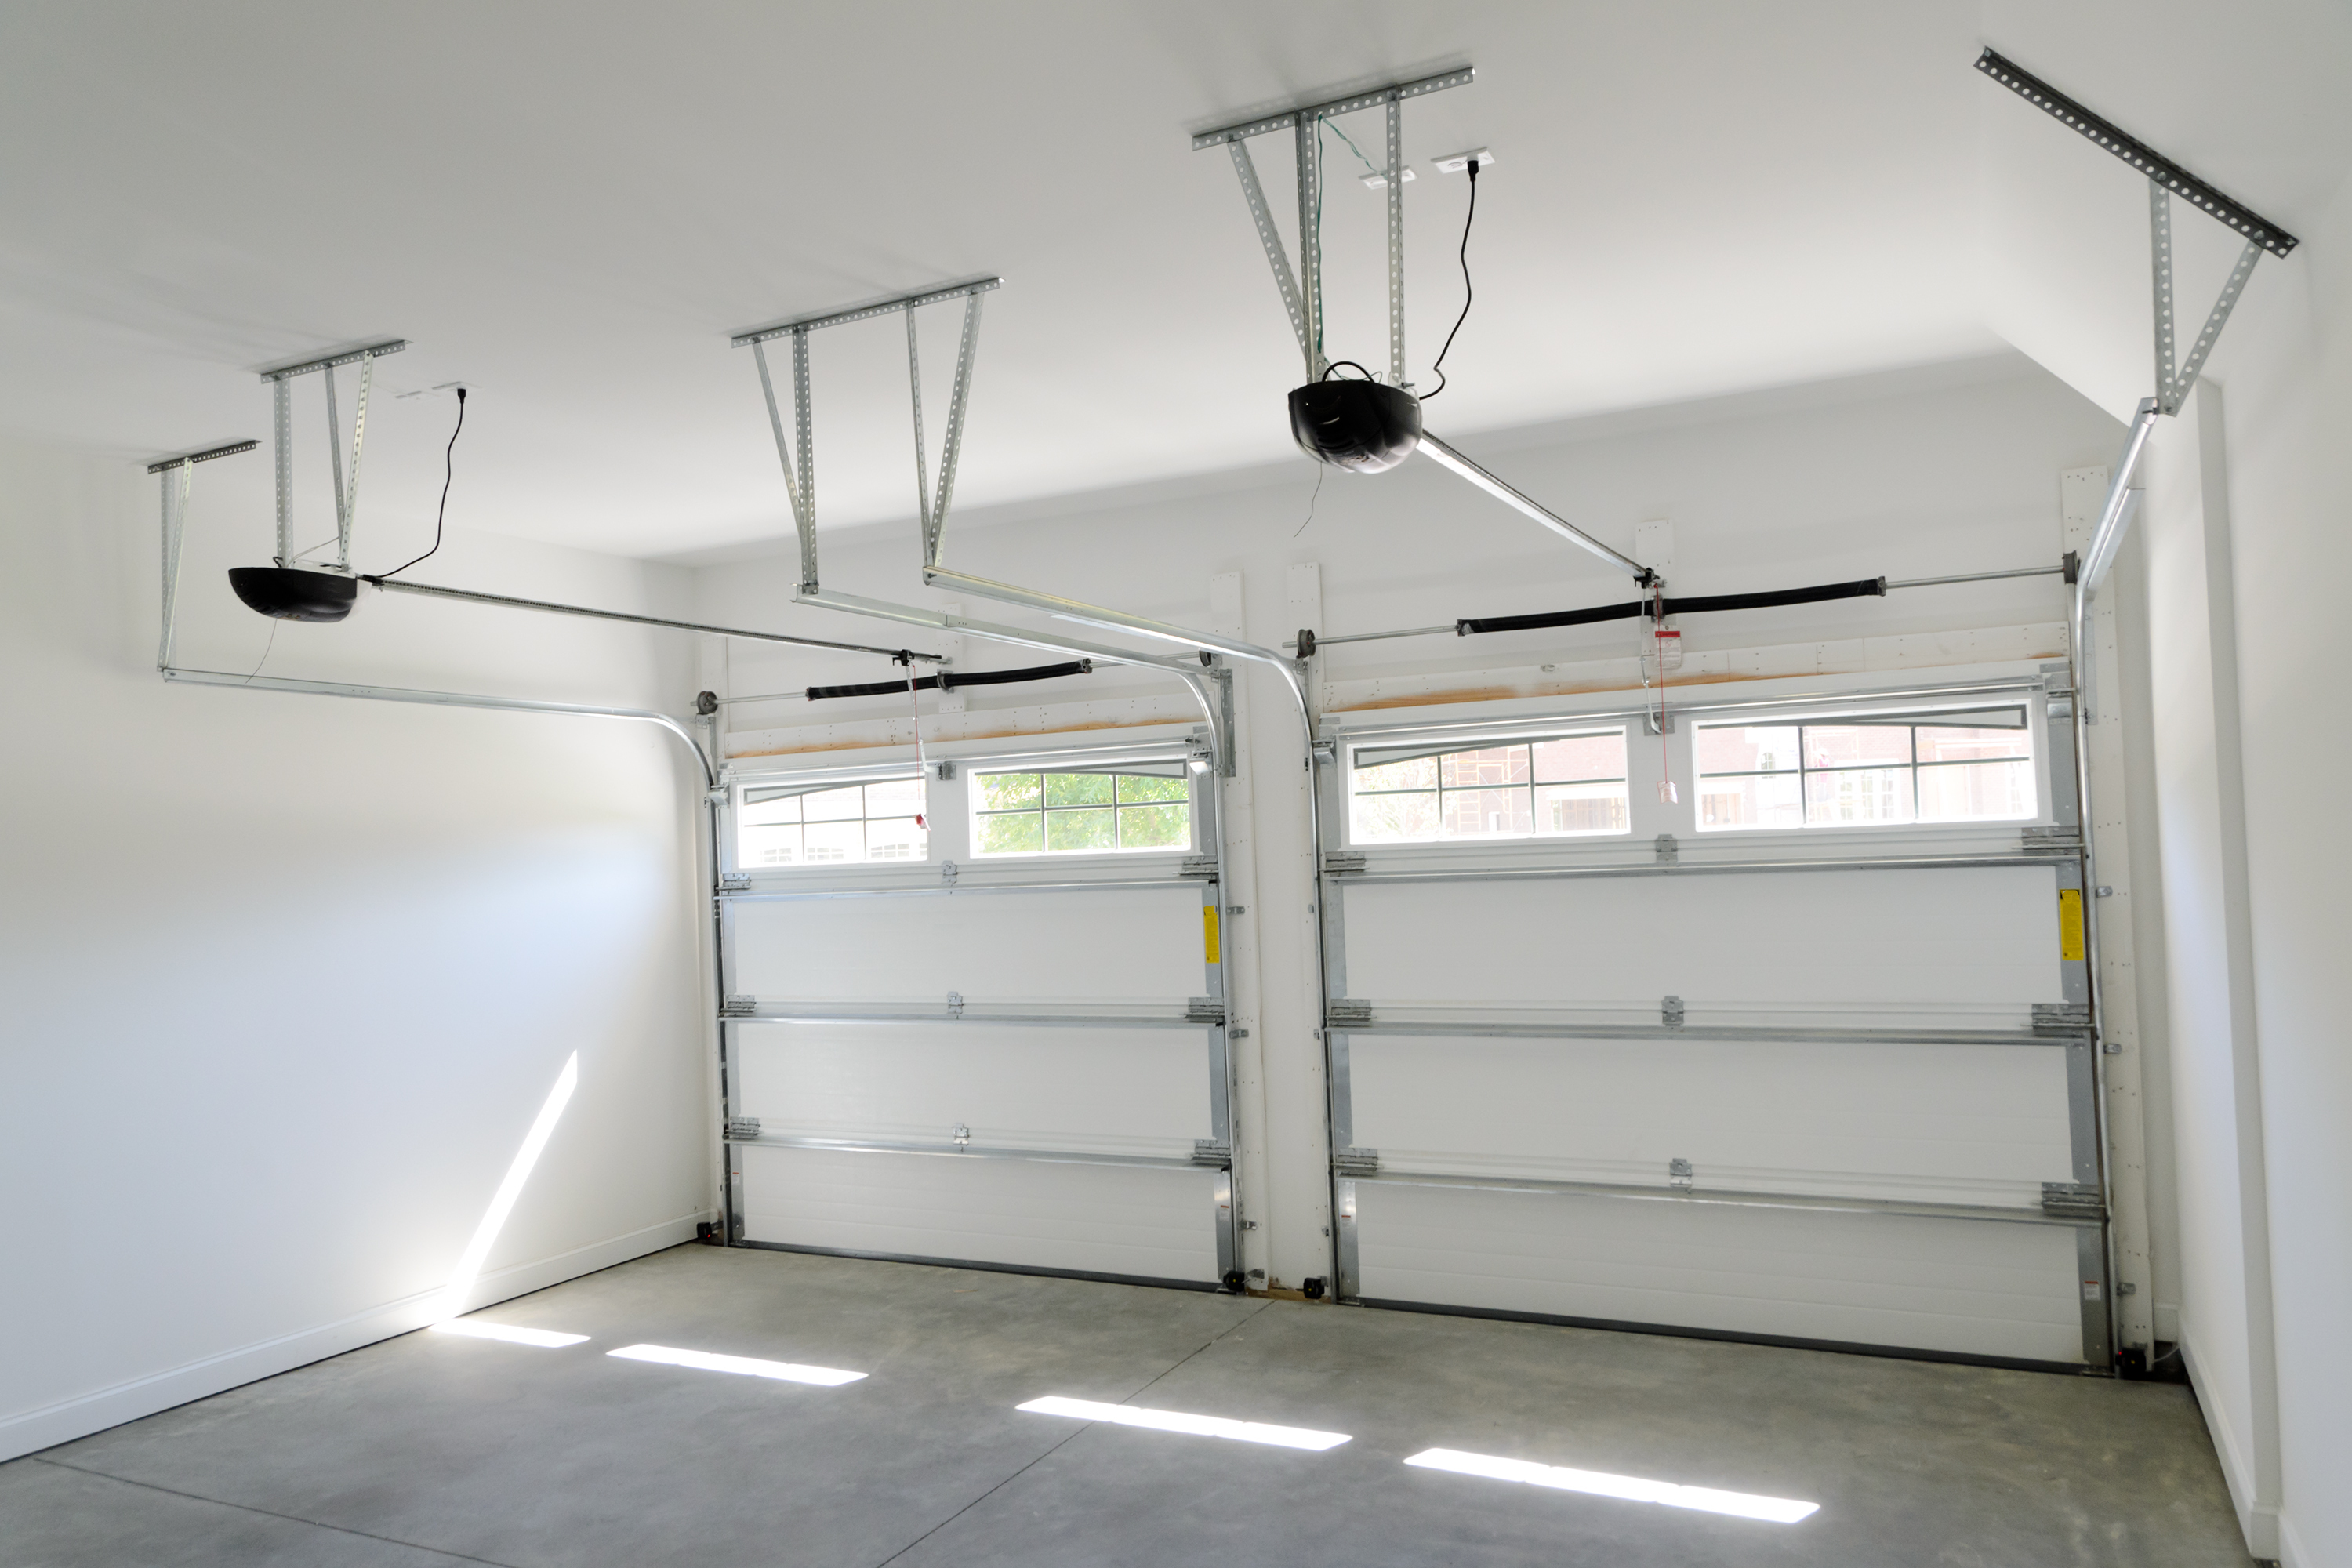 The importance of practicing garage door safety perfect shutterstock85743676 garage doors are not rubansaba